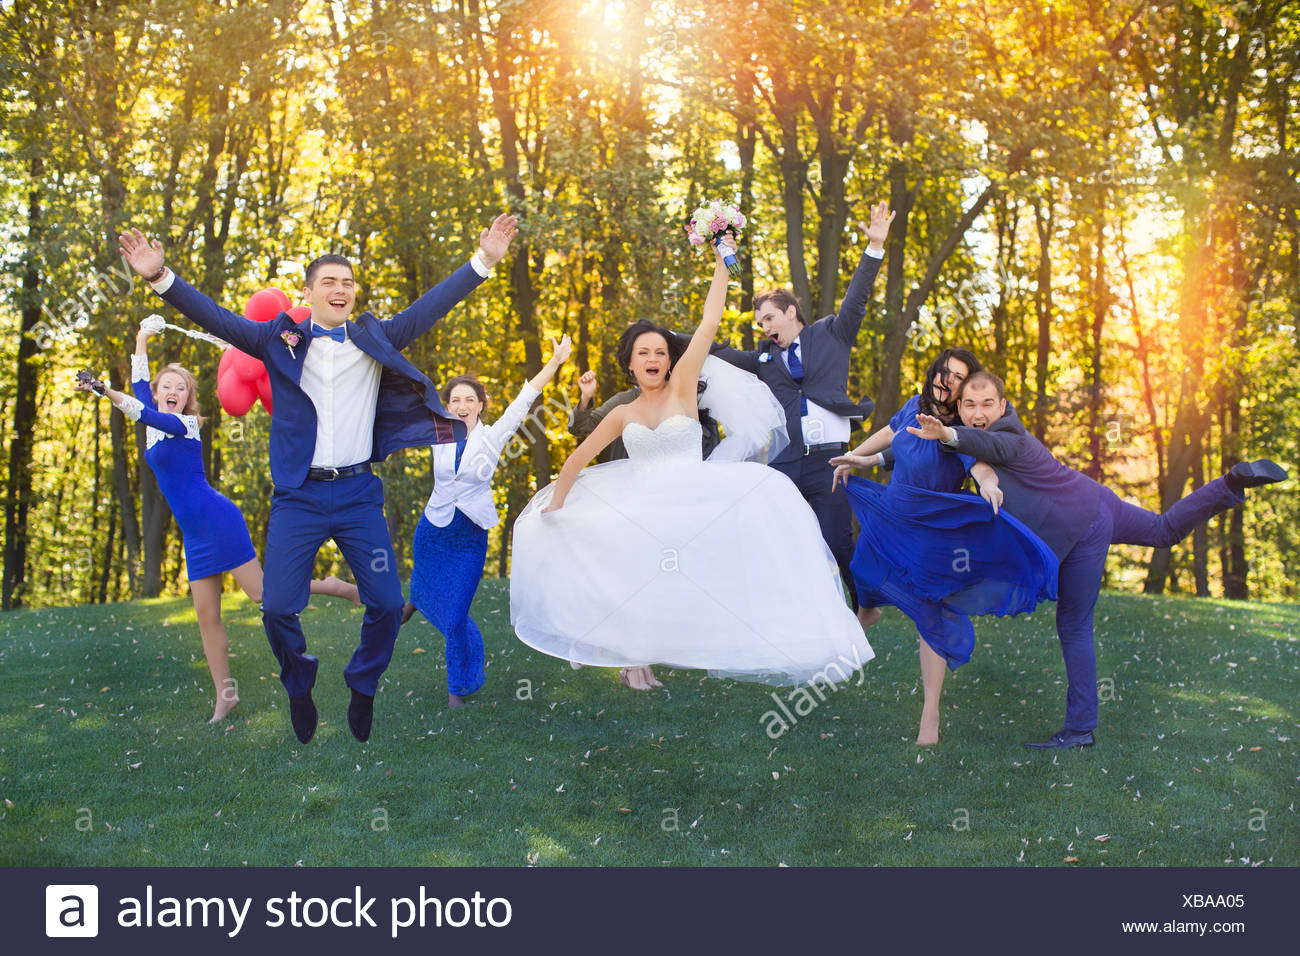 Funny guests at the wedding - Stock Image